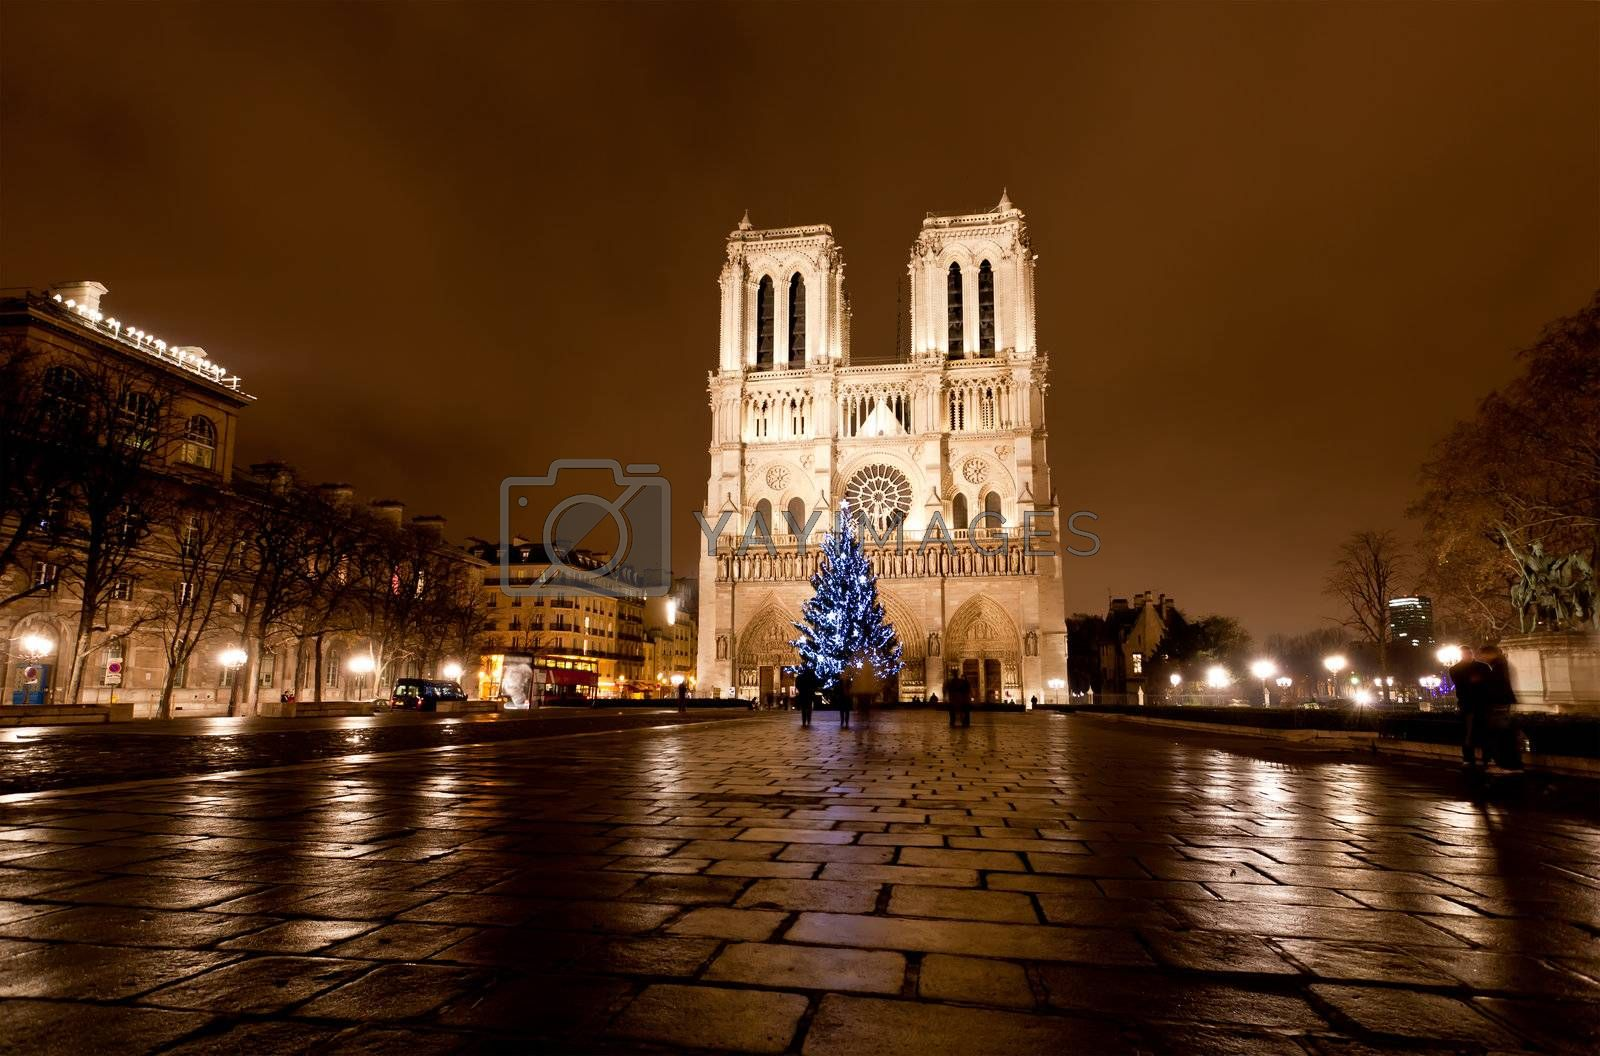 The famous Notre Dame at night in Paris, France